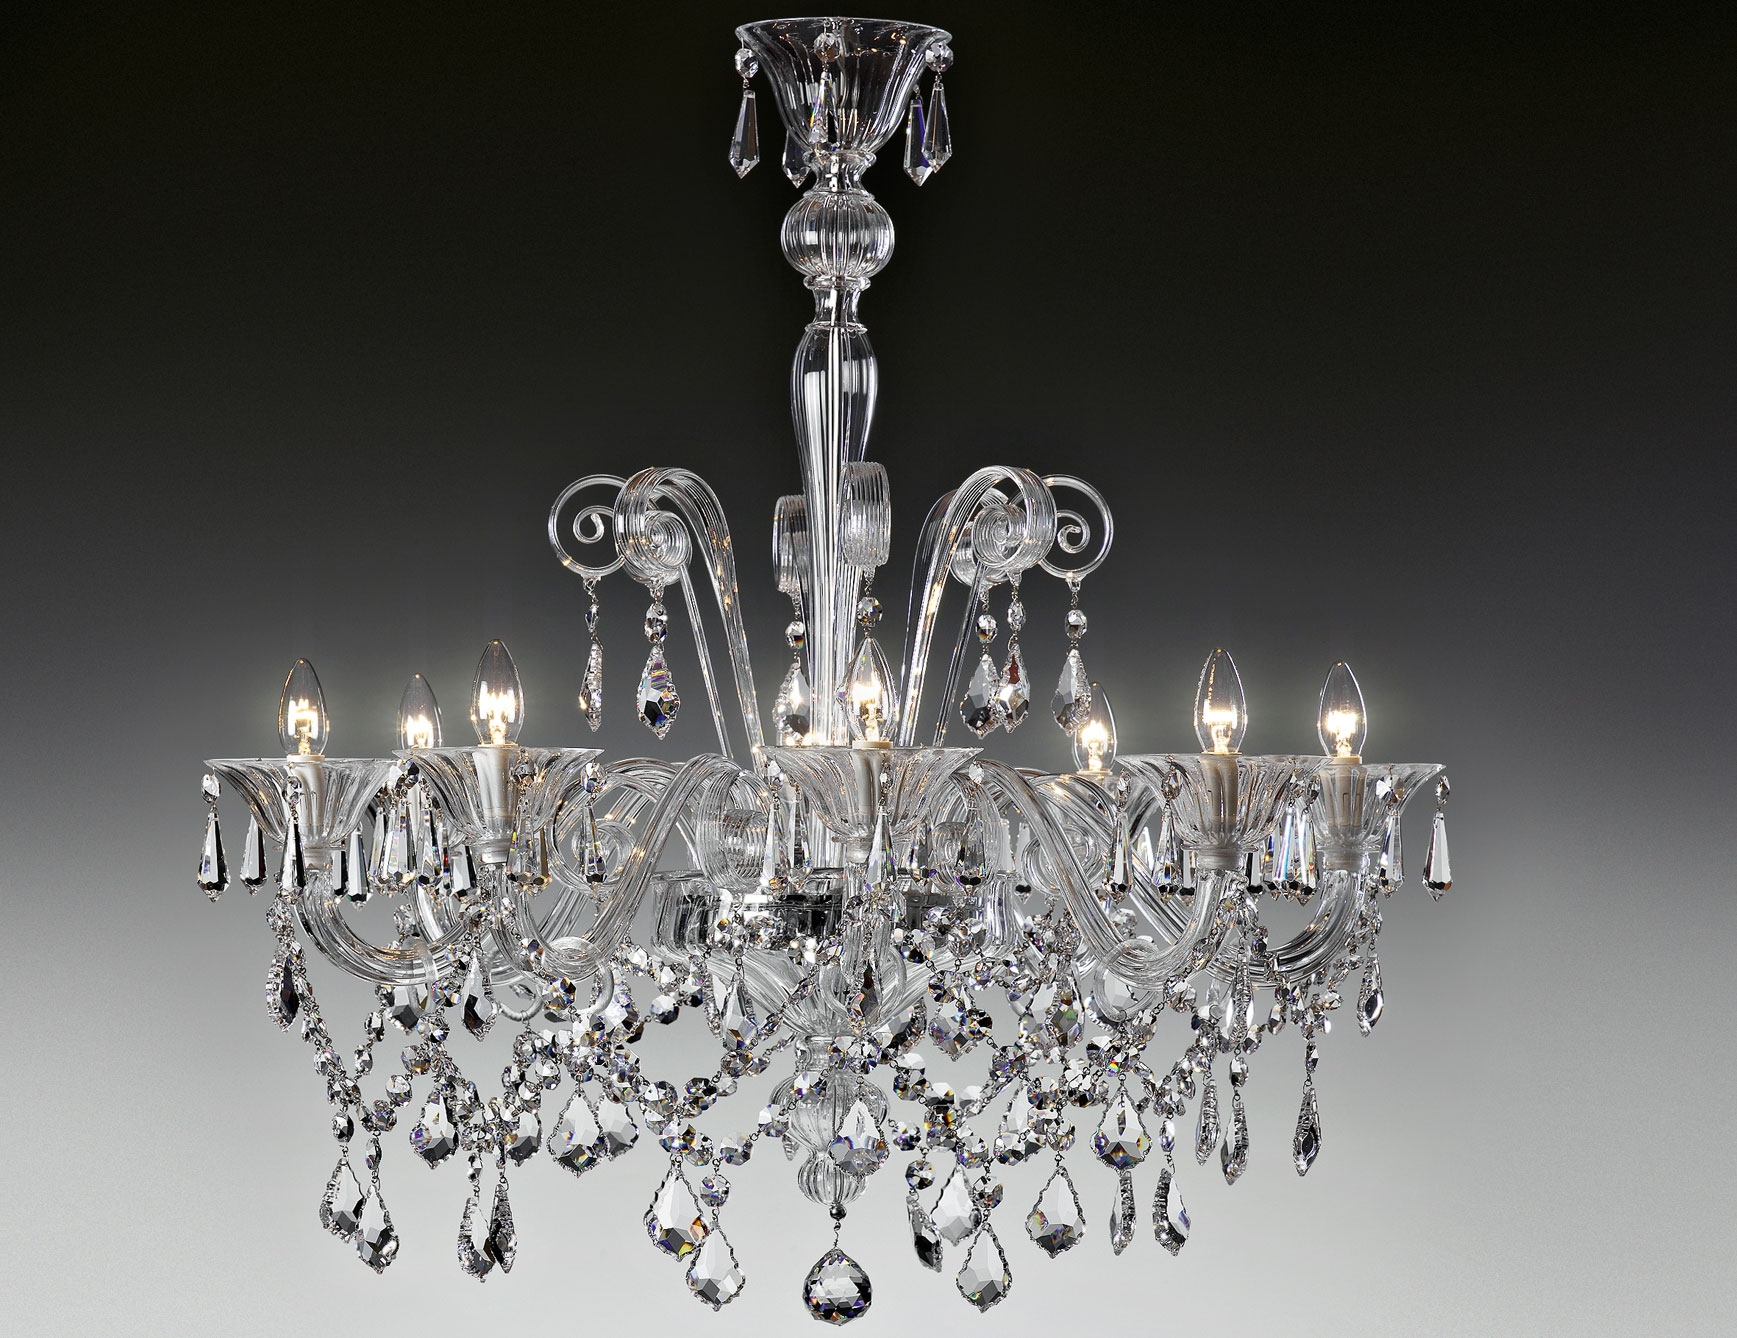 Nella Vetrina Lulu 9016 8 Modern Italian Chandelier Clear Murano Glass In Italian Chandeliers (#7 of 12)